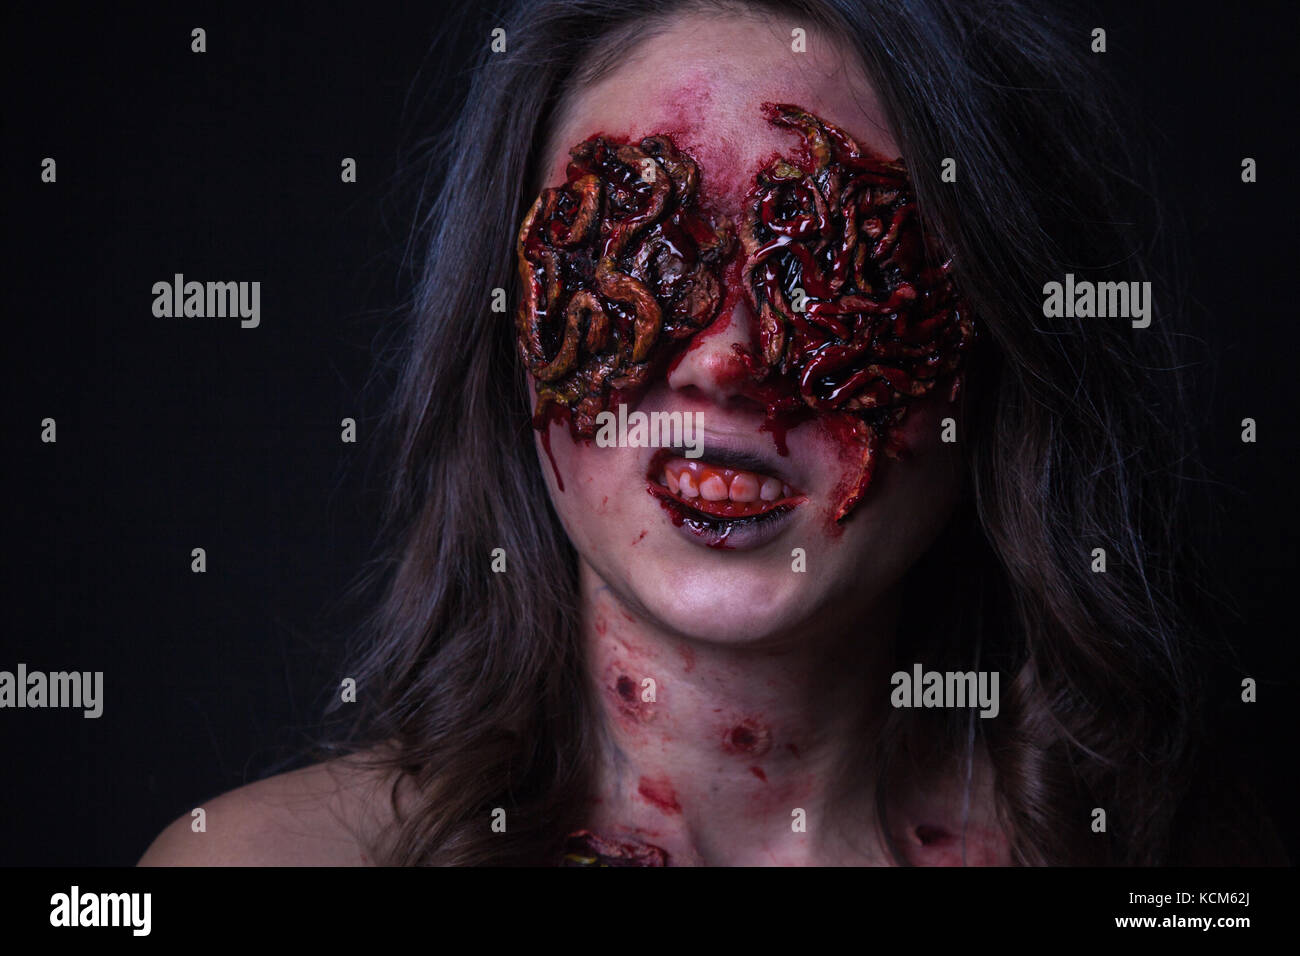 Girl With Realistic Sores And Worms In Her Eyes Creative Halloween